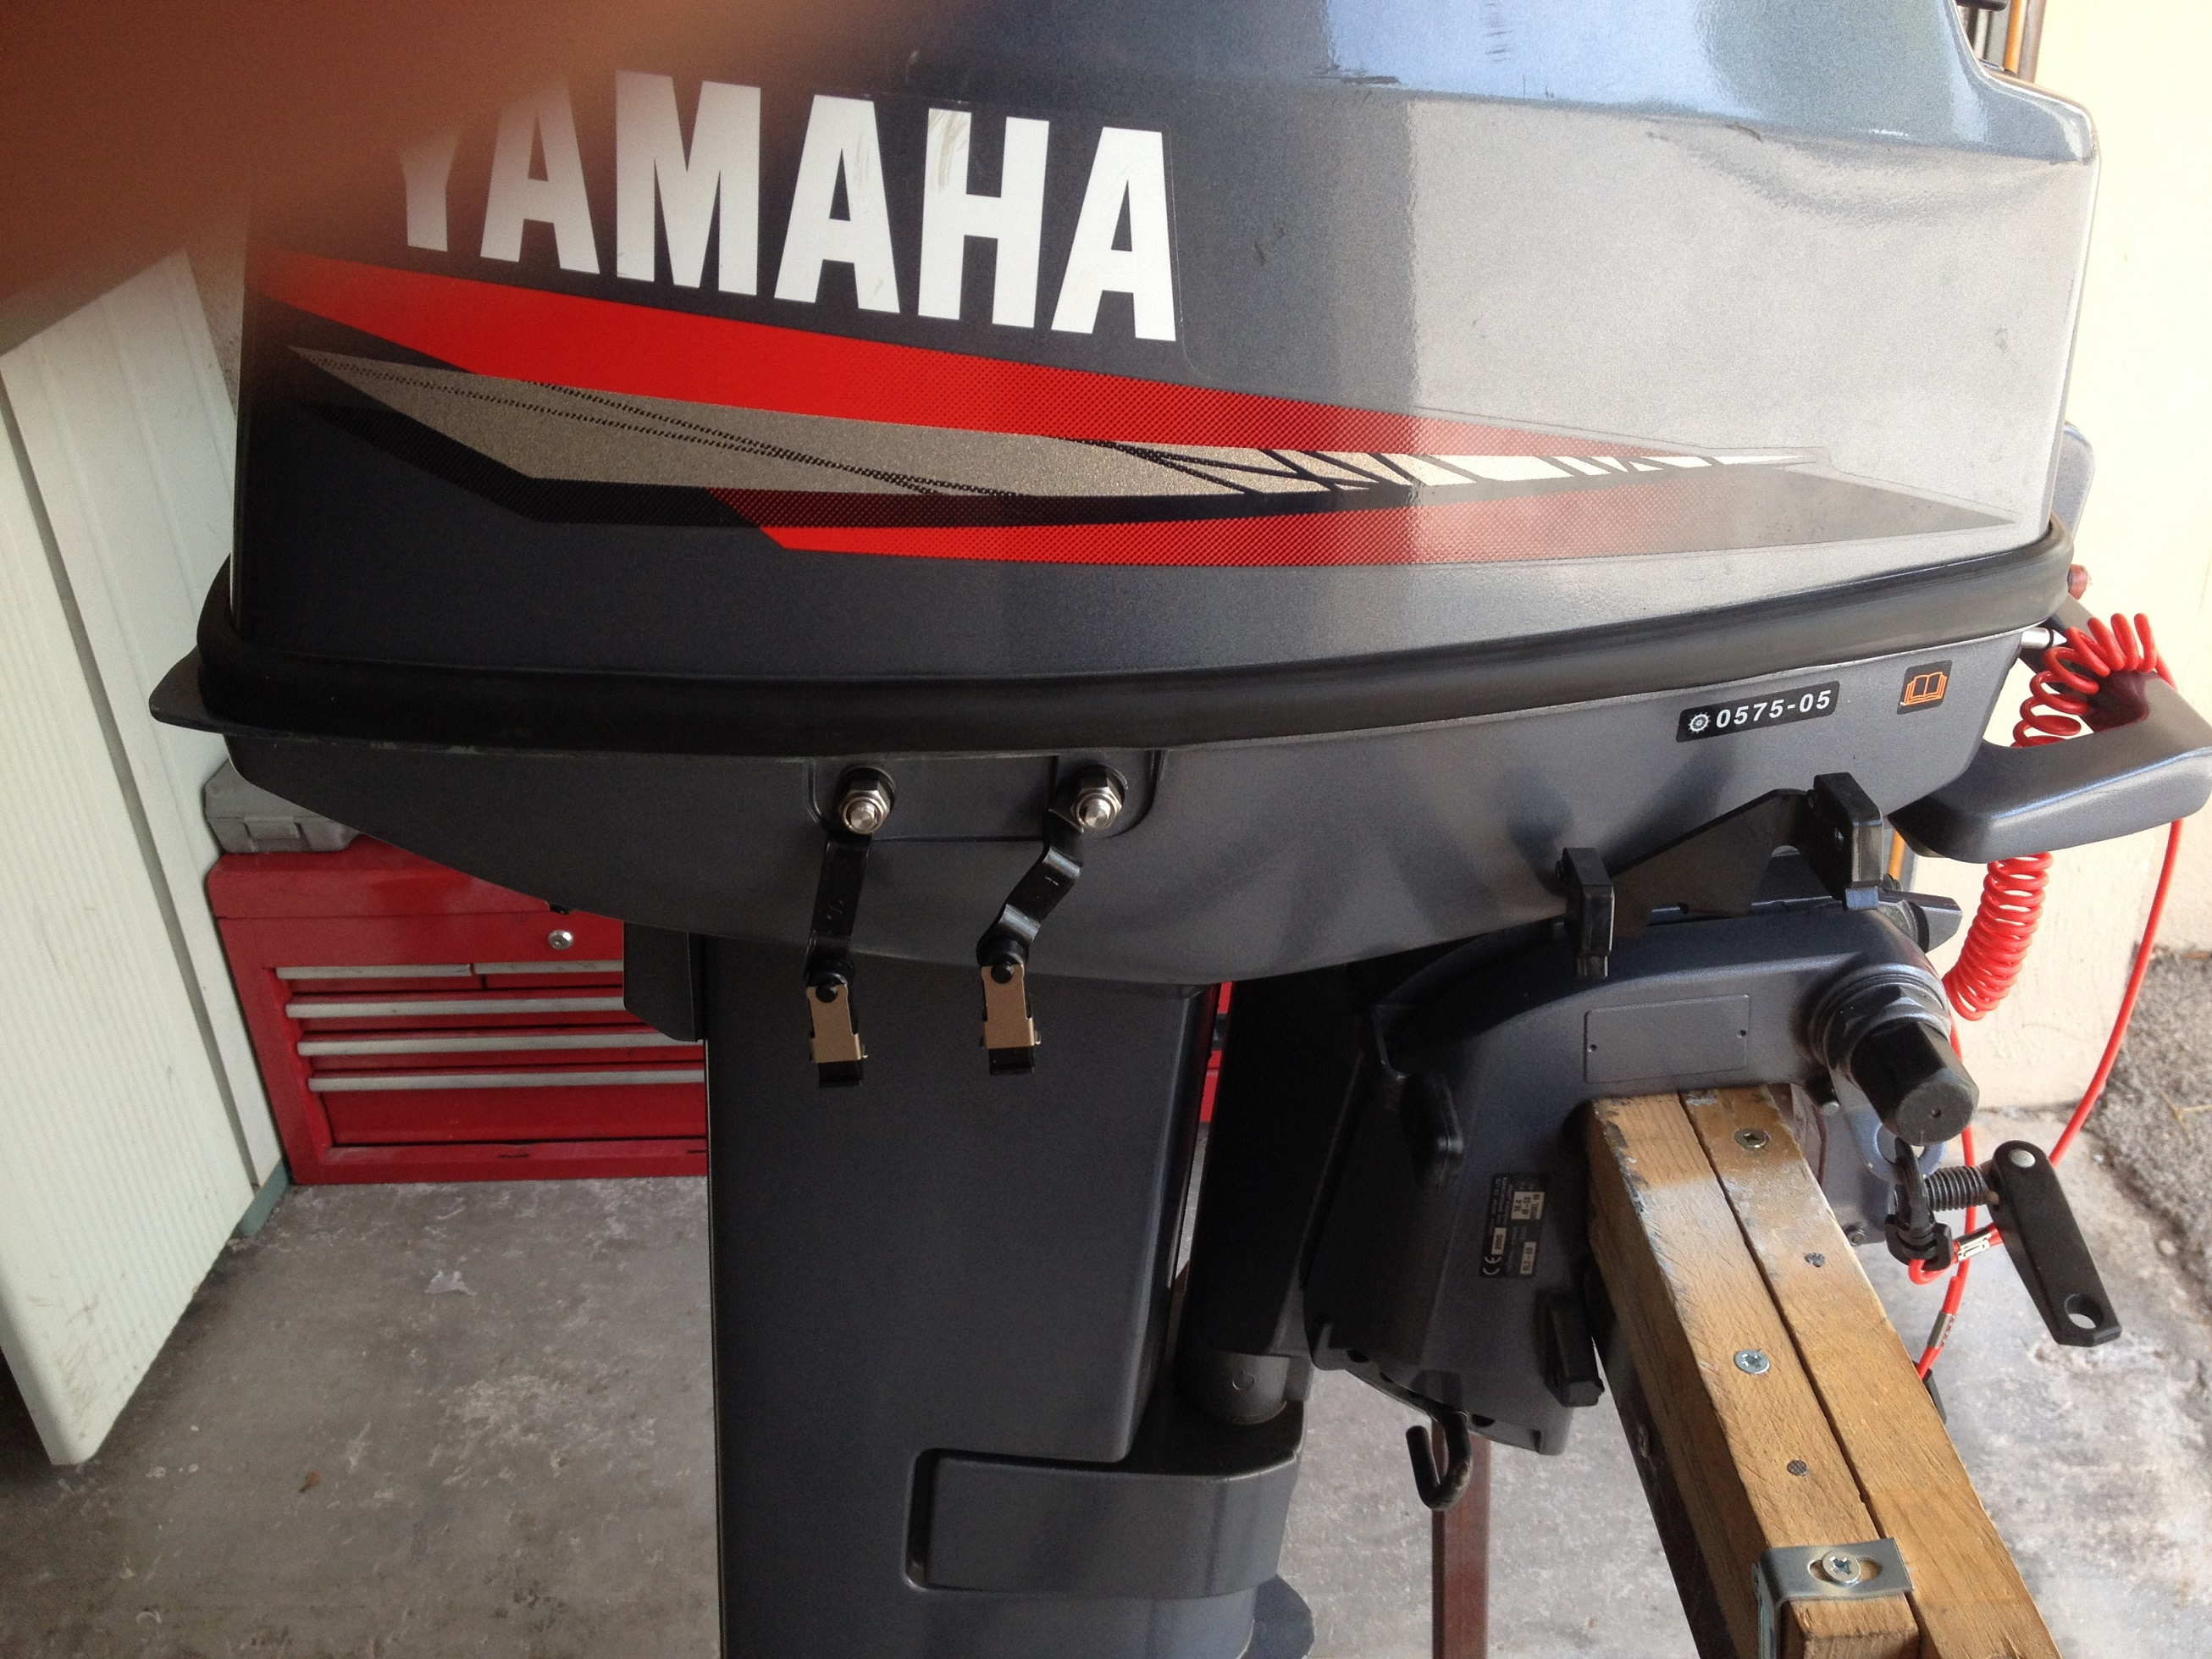 photo 2  3  - yamaha 25 cv - criss83200 - photos